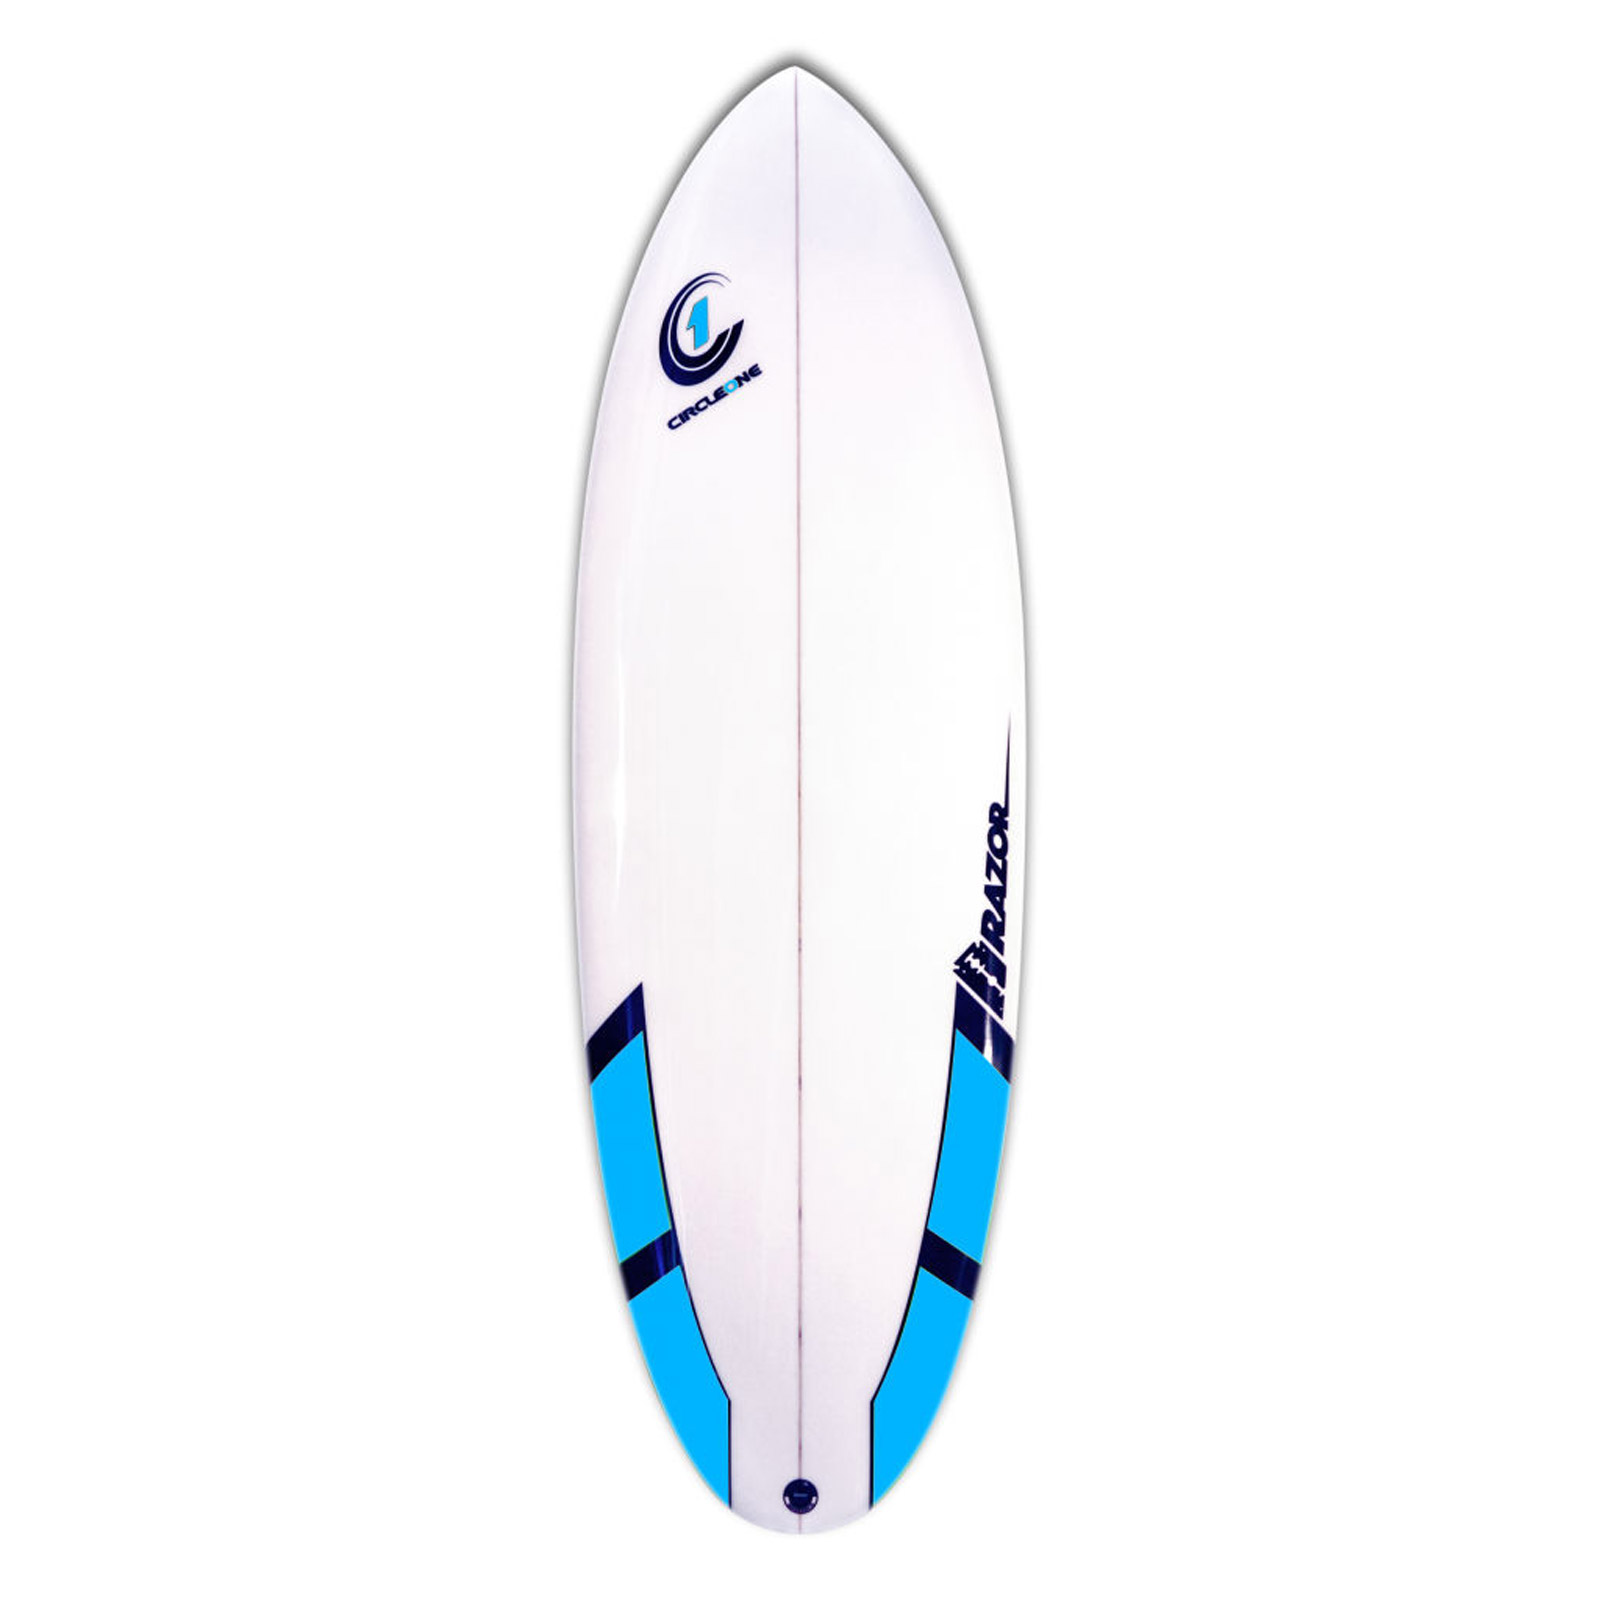 5ft 8inch Razor Surfboard - Round Tail Shortboard - Gloss Finish